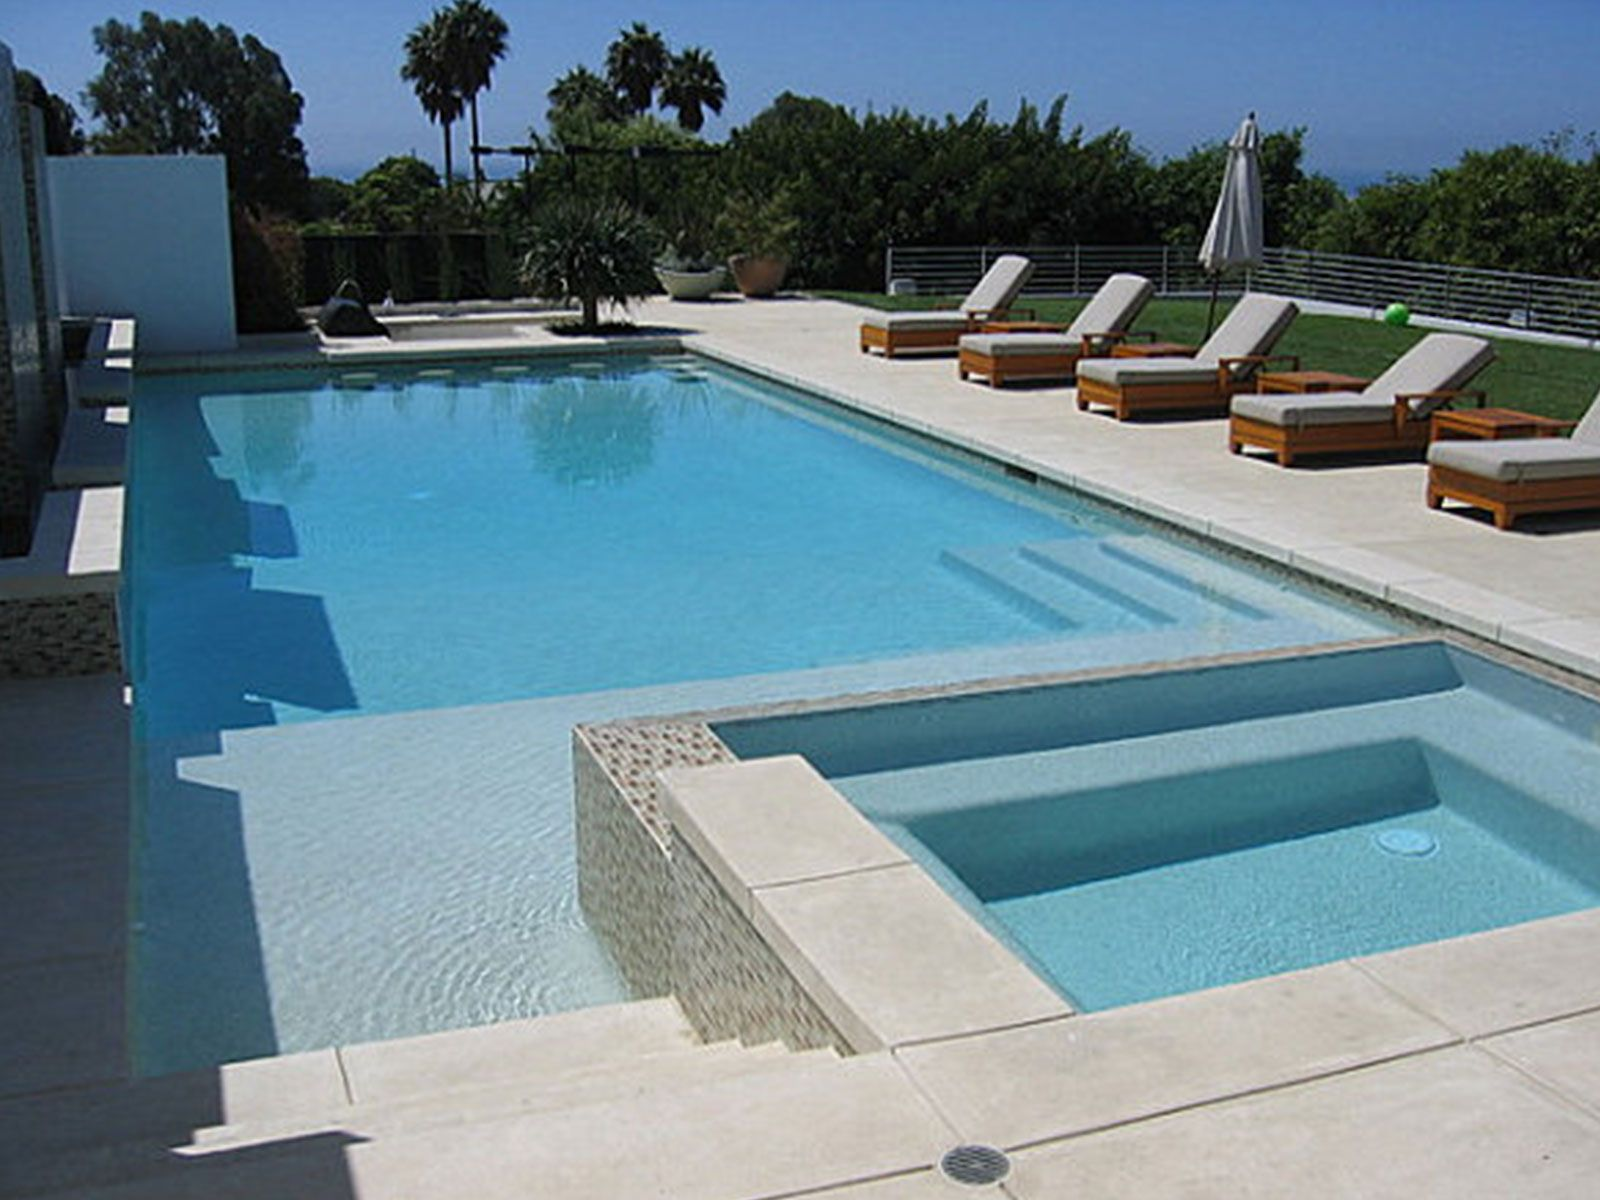 Simple swimming pool design image modern creative swimming for Pool design shapes